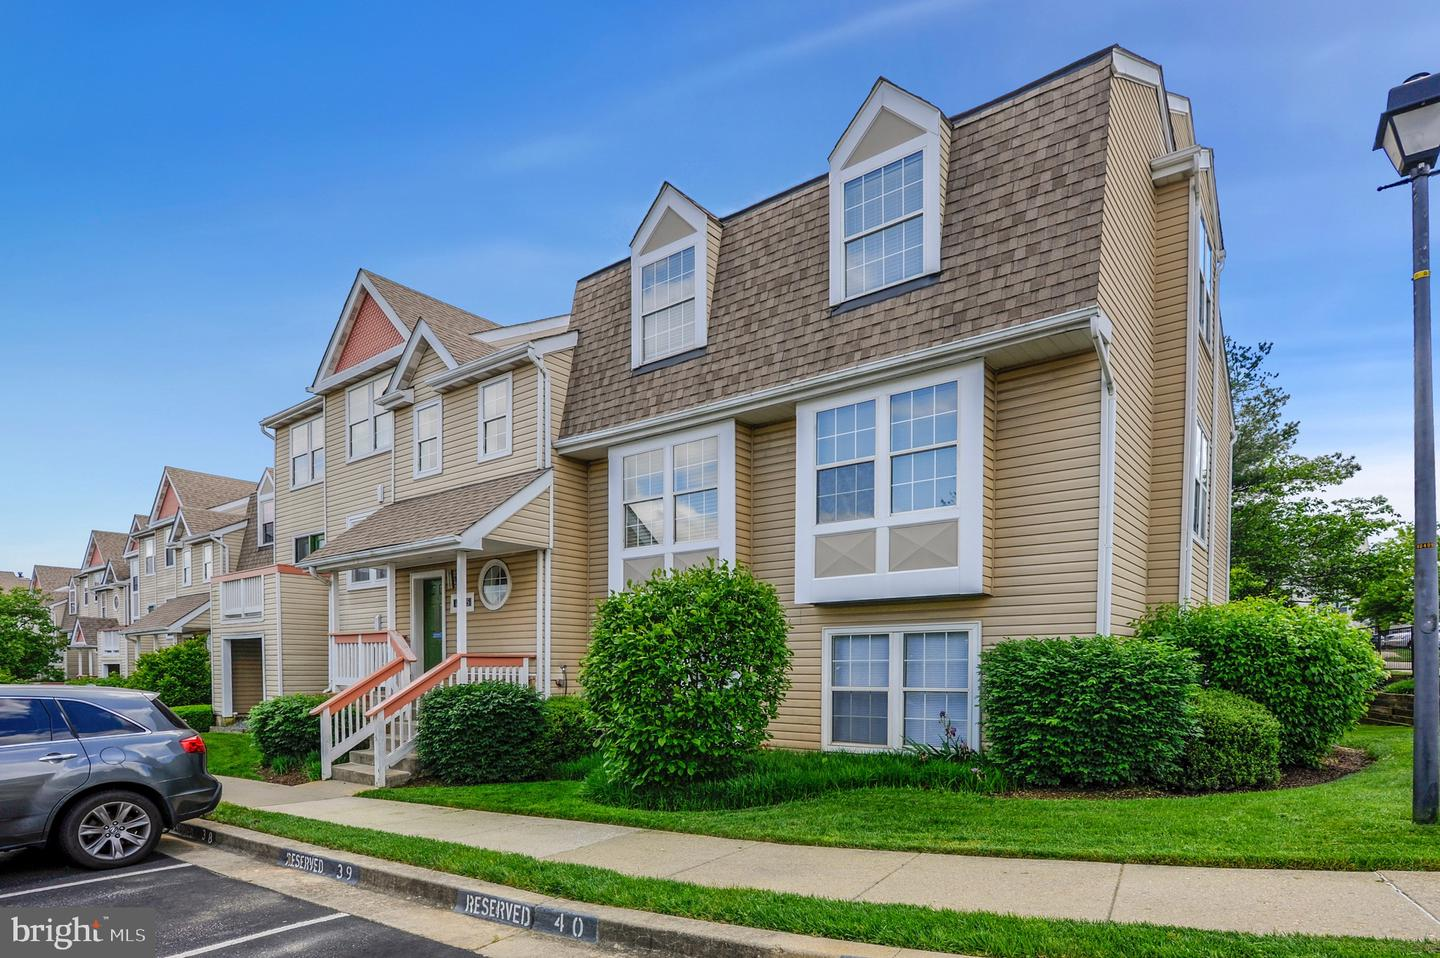 14225 JIB STREET 8462, LAUREL, Maryland